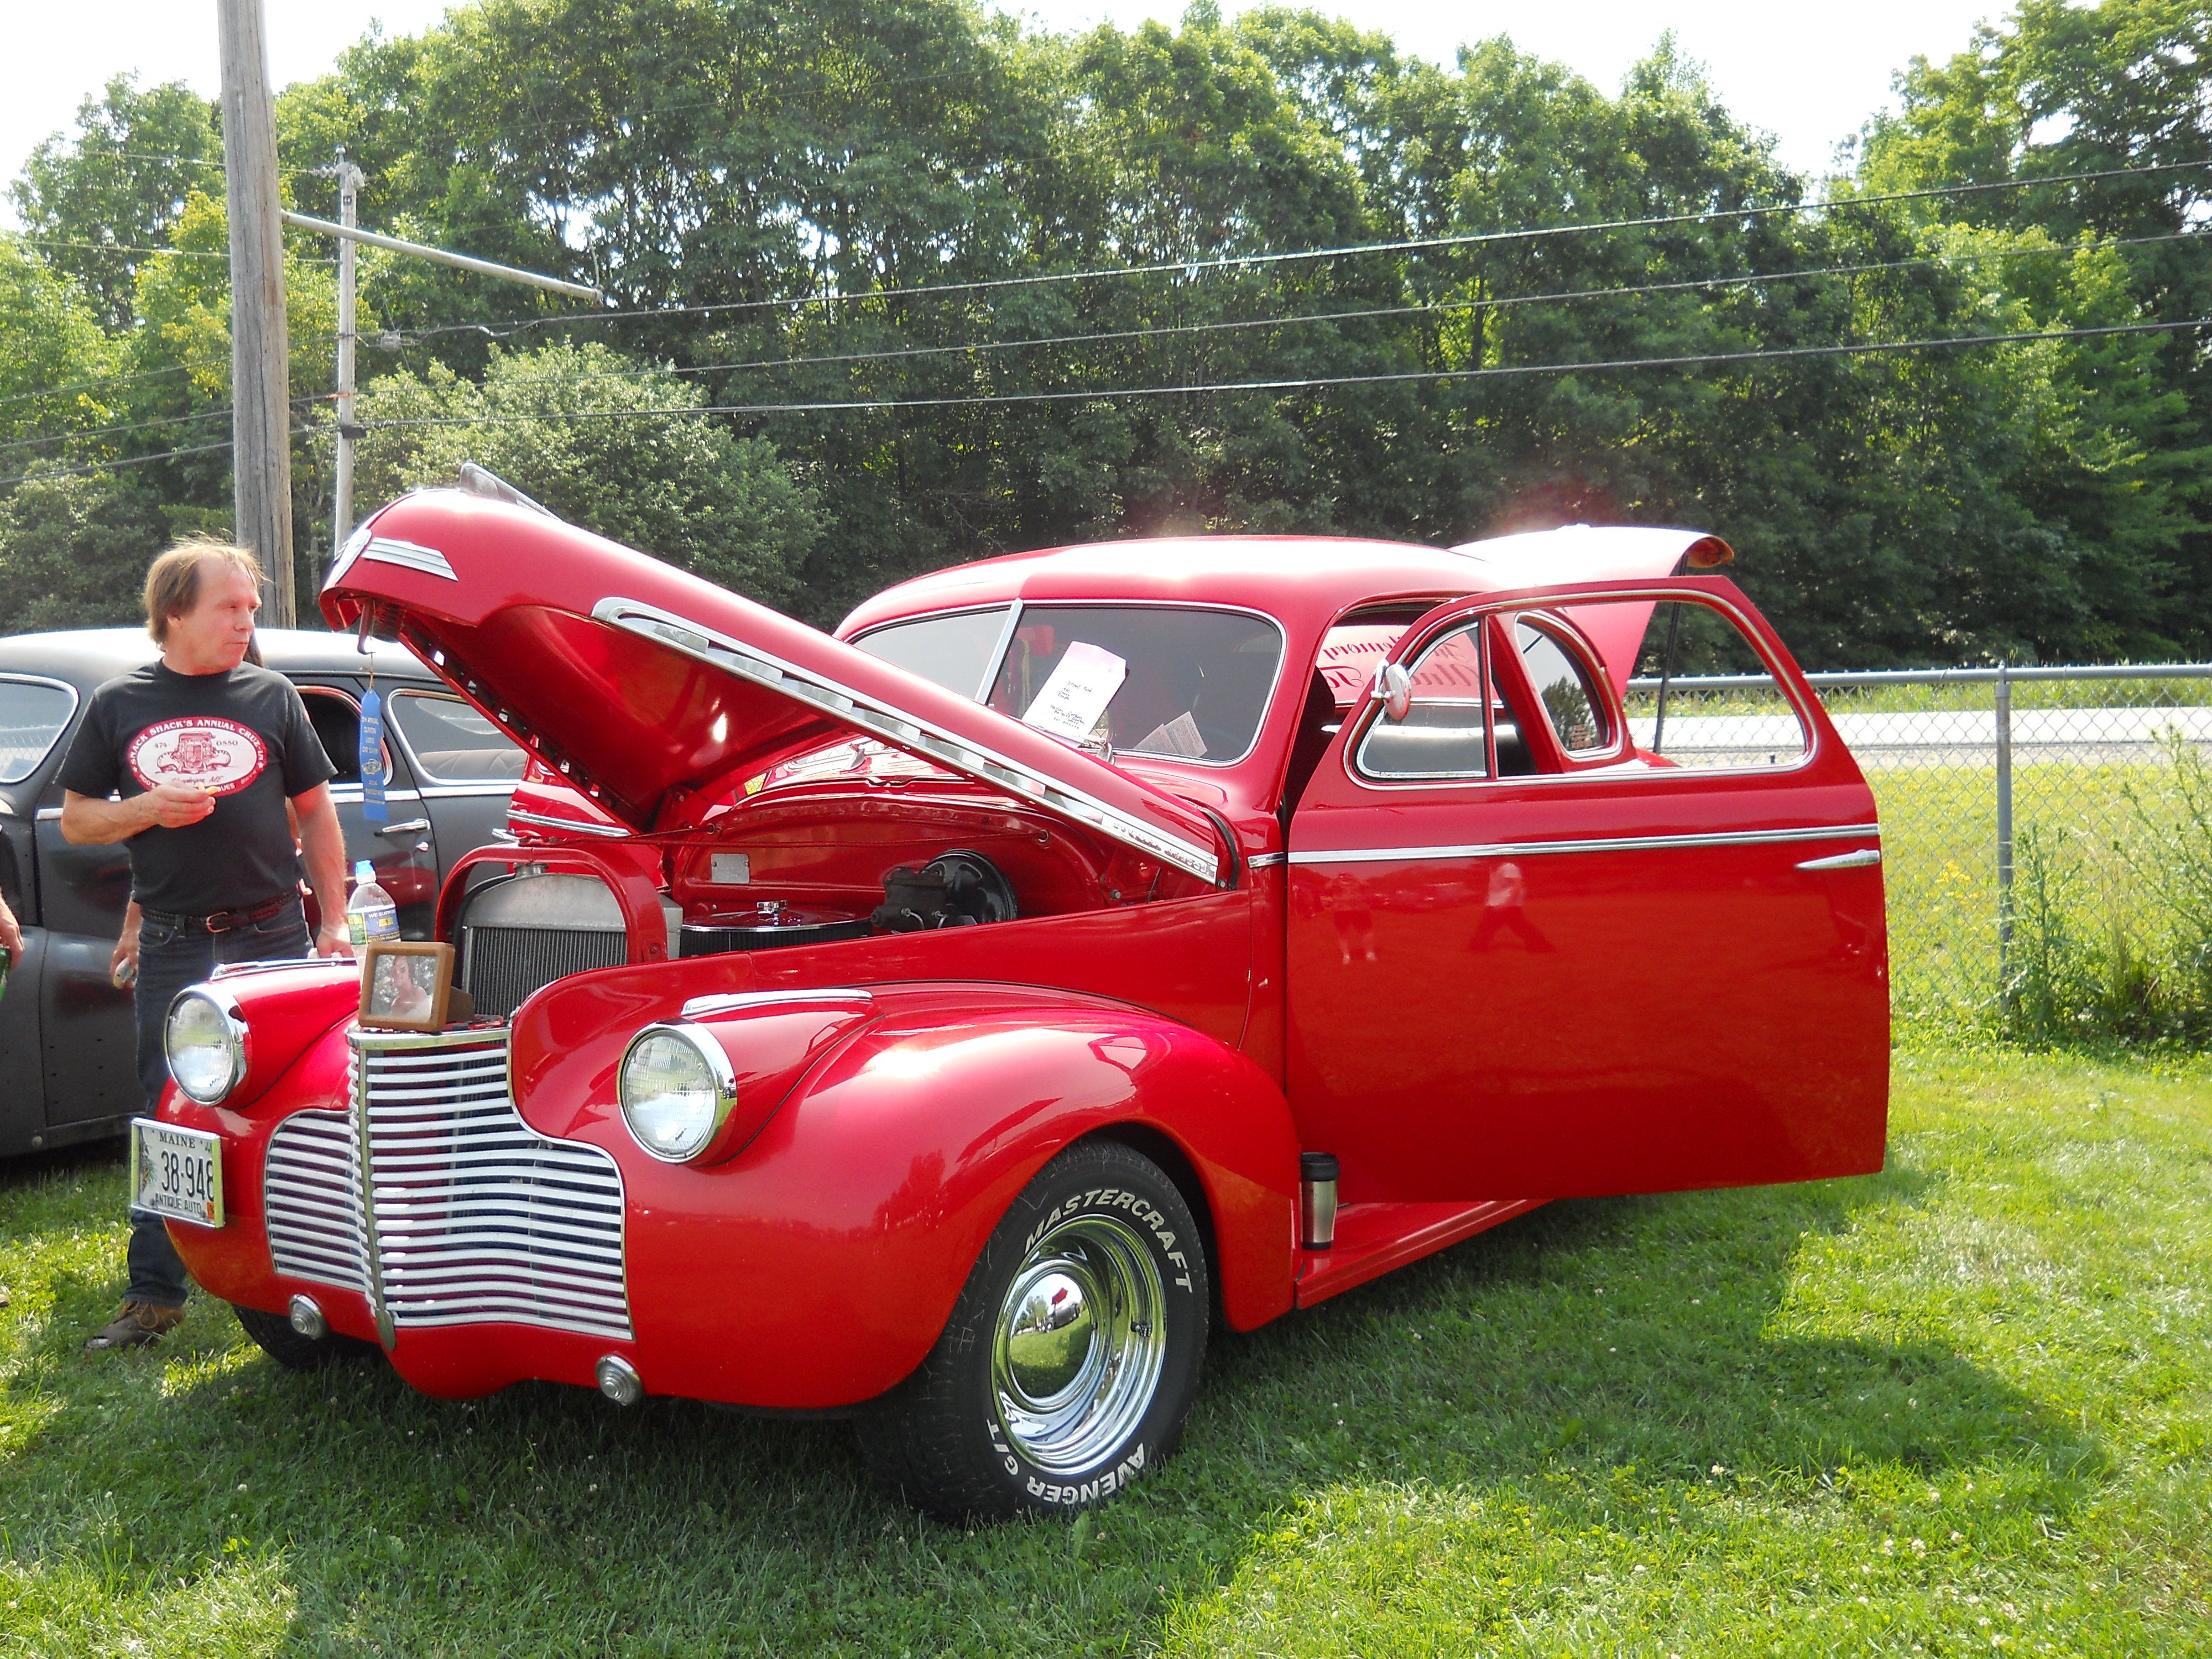 1940 Chevy Coupe 2 Door With Driver Seat That Turns For Easy Get Out Classic Hot Rod Coupe Chevy